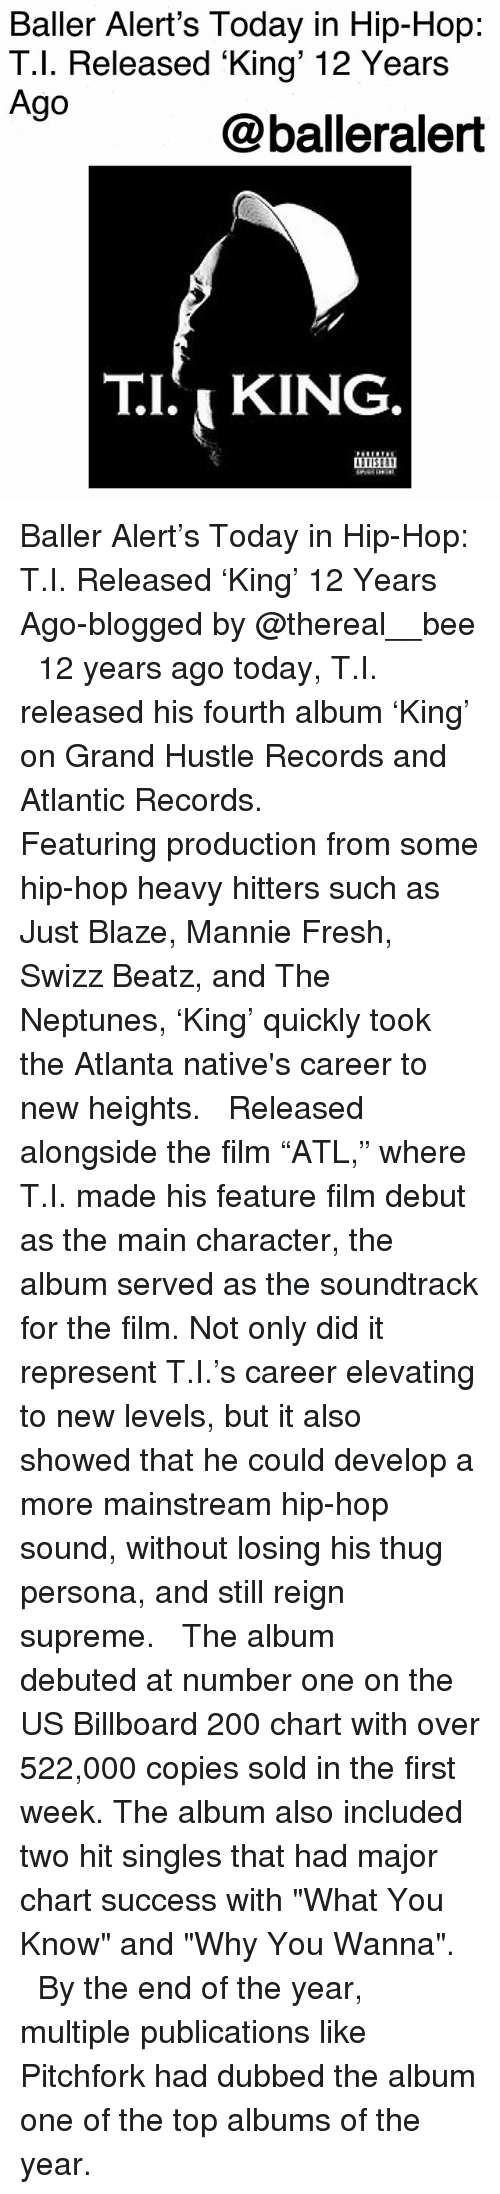 """Bailey Jay, Baller Alert, and Billboard: Baller Alert's Today in Hip-Hop:  T.l. Released King' 12 Years  Ago  @balleralert  TI,KING Baller Alert's Today in Hip-Hop: T.I. Released 'King' 12 Years Ago-blogged by @thereal__bee ⠀⠀⠀⠀⠀⠀⠀⠀⠀ ⠀⠀ 12 years ago today, T.I. released his fourth album 'King' on Grand Hustle Records and Atlantic Records. ⠀⠀⠀⠀⠀⠀⠀⠀⠀ ⠀⠀ Featuring production from some hip-hop heavy hitters such as Just Blaze, Mannie Fresh, Swizz Beatz, and The Neptunes, 'King' quickly took the Atlanta native's career to new heights. ⠀⠀⠀⠀⠀⠀⠀⠀⠀ ⠀⠀ Released alongside the film """"ATL,"""" where T.I. made his feature film debut as the main character, the album served as the soundtrack for the film. Not only did it represent T.I.'s career elevating to new levels, but it also showed that he could develop a more mainstream hip-hop sound, without losing his thug persona, and still reign supreme. ⠀⠀⠀⠀⠀⠀⠀⠀⠀ ⠀⠀ The album debuted at number one on the US Billboard 200 chart with over 522,000 copies sold in the first week. The album also included two hit singles that had major chart success with """"What You Know"""" and """"Why You Wanna"""". ⠀⠀⠀⠀⠀⠀⠀⠀⠀ ⠀⠀ By the end of the year, multiple publications like Pitchfork had dubbed the album one of the top albums of the year."""